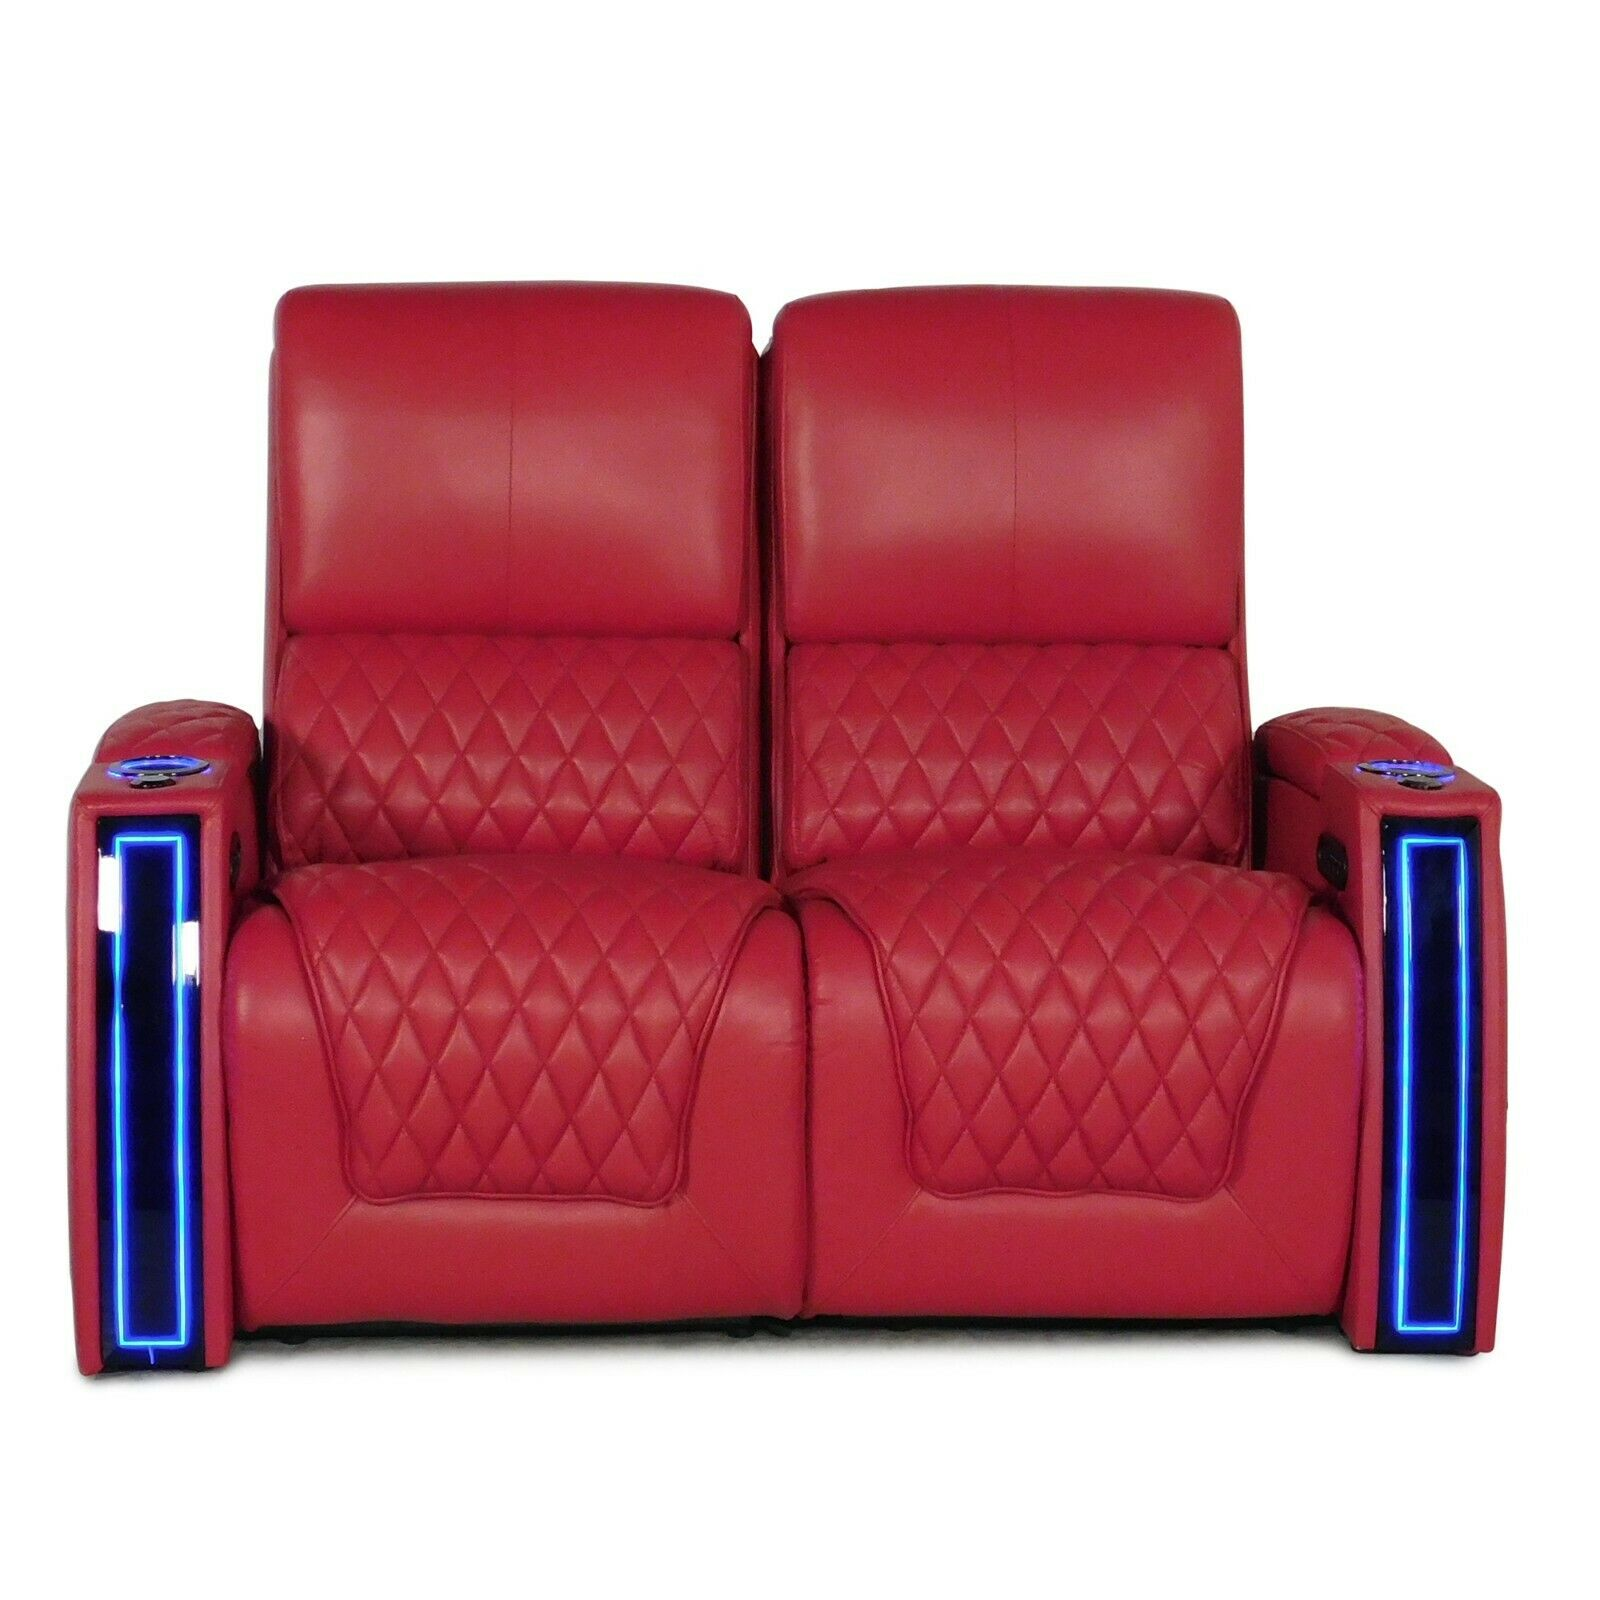 Seatcraft Apex Red Leather Home Theater Seating Chairs Loves